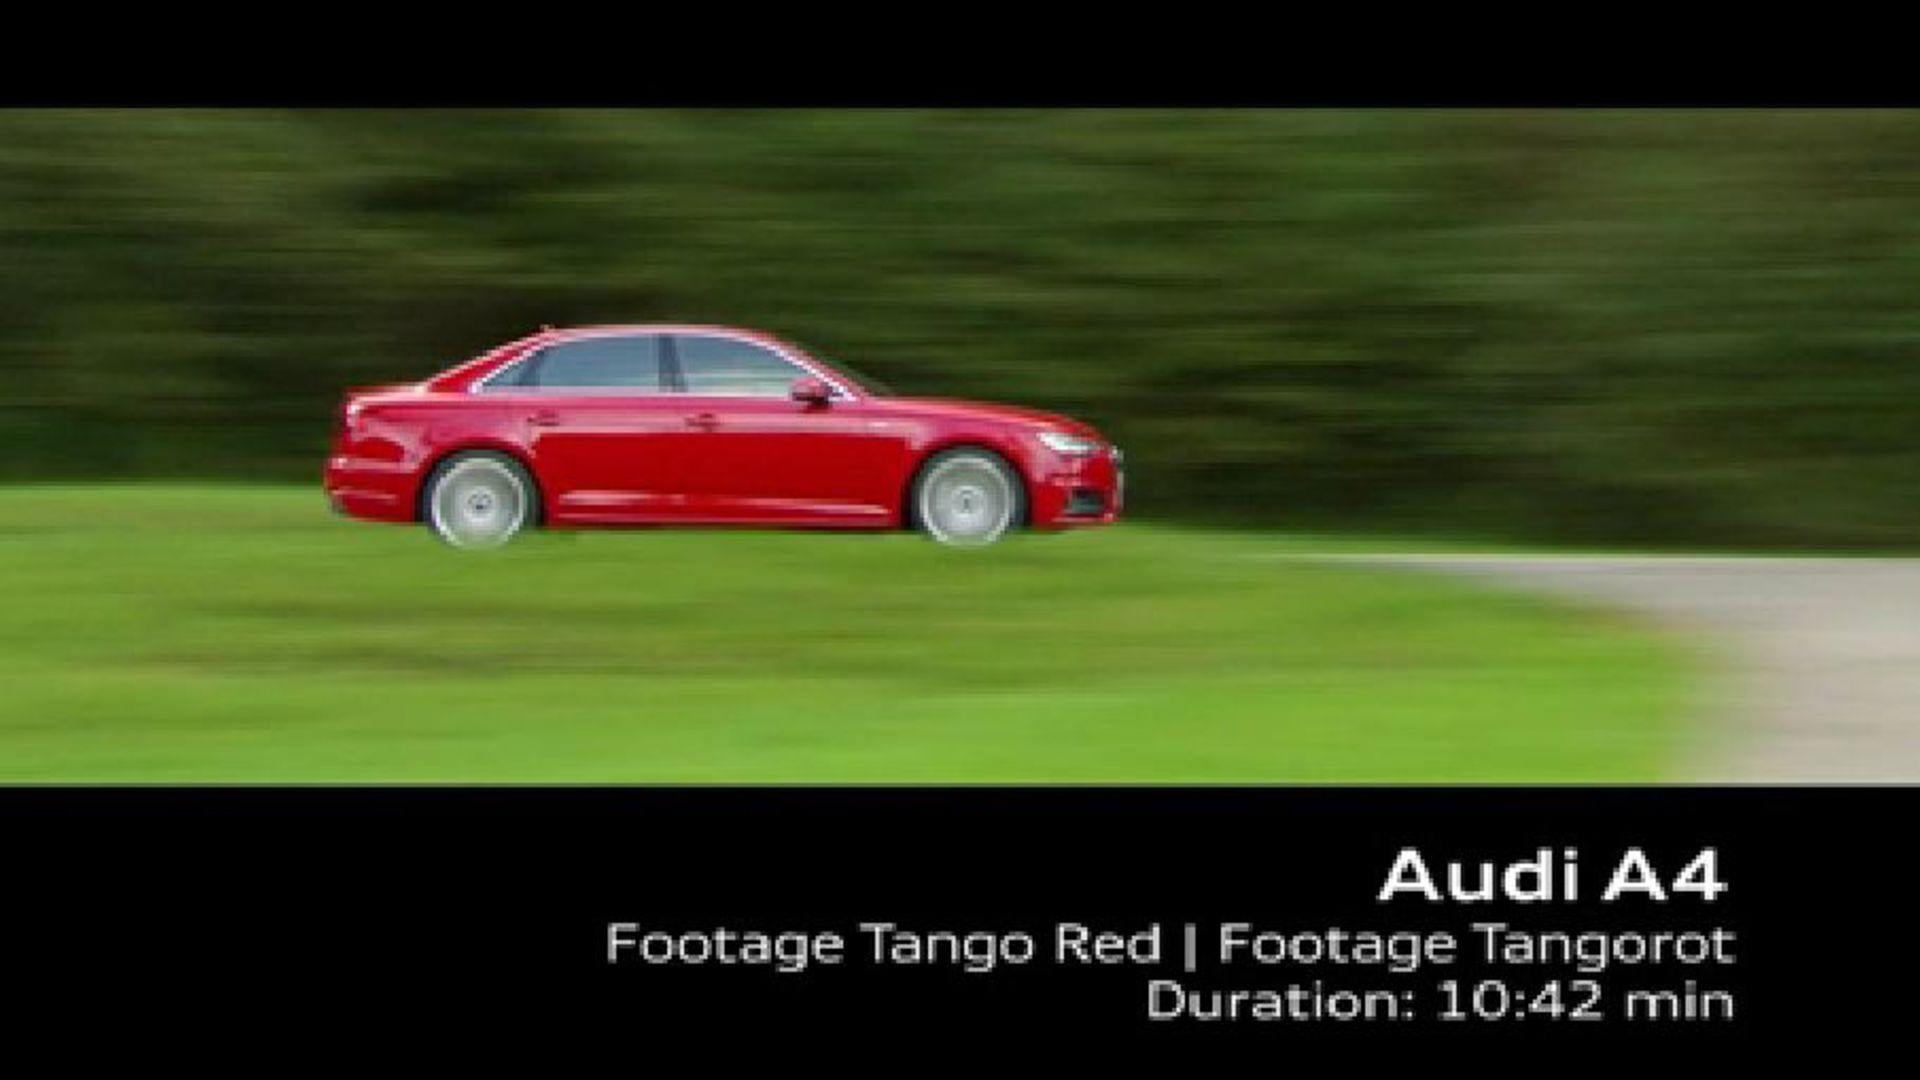 Audi A4 Limousine - Footage Tangorot